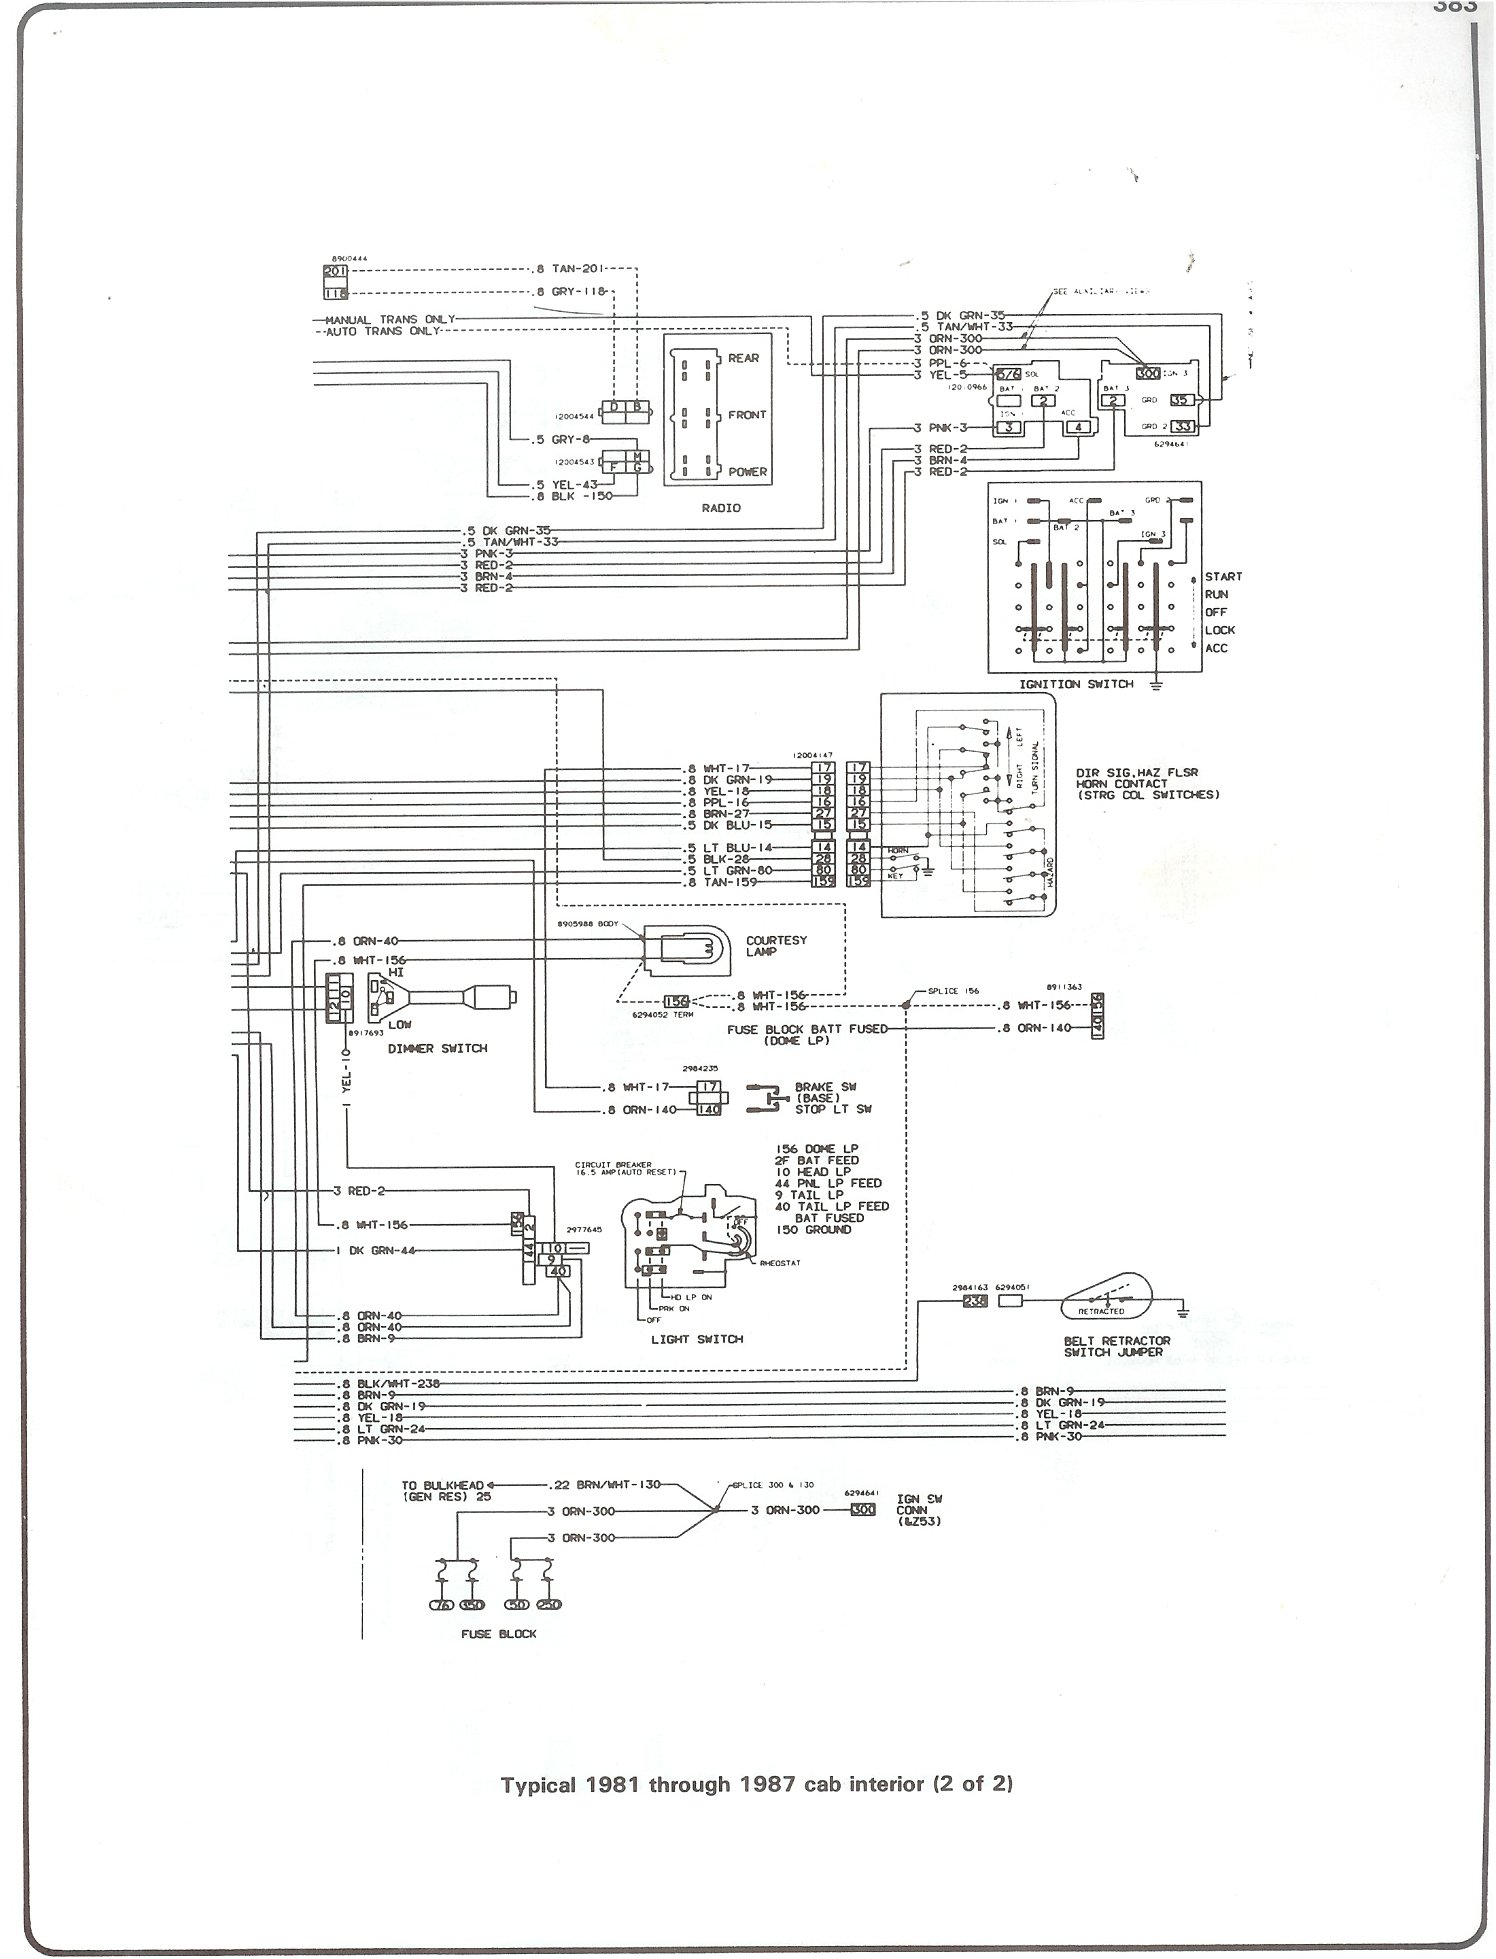 81 87_cab_inter_pg2 complete 73 87 wiring diagrams 1987 gmc truck wiring diagram at webbmarketing.co